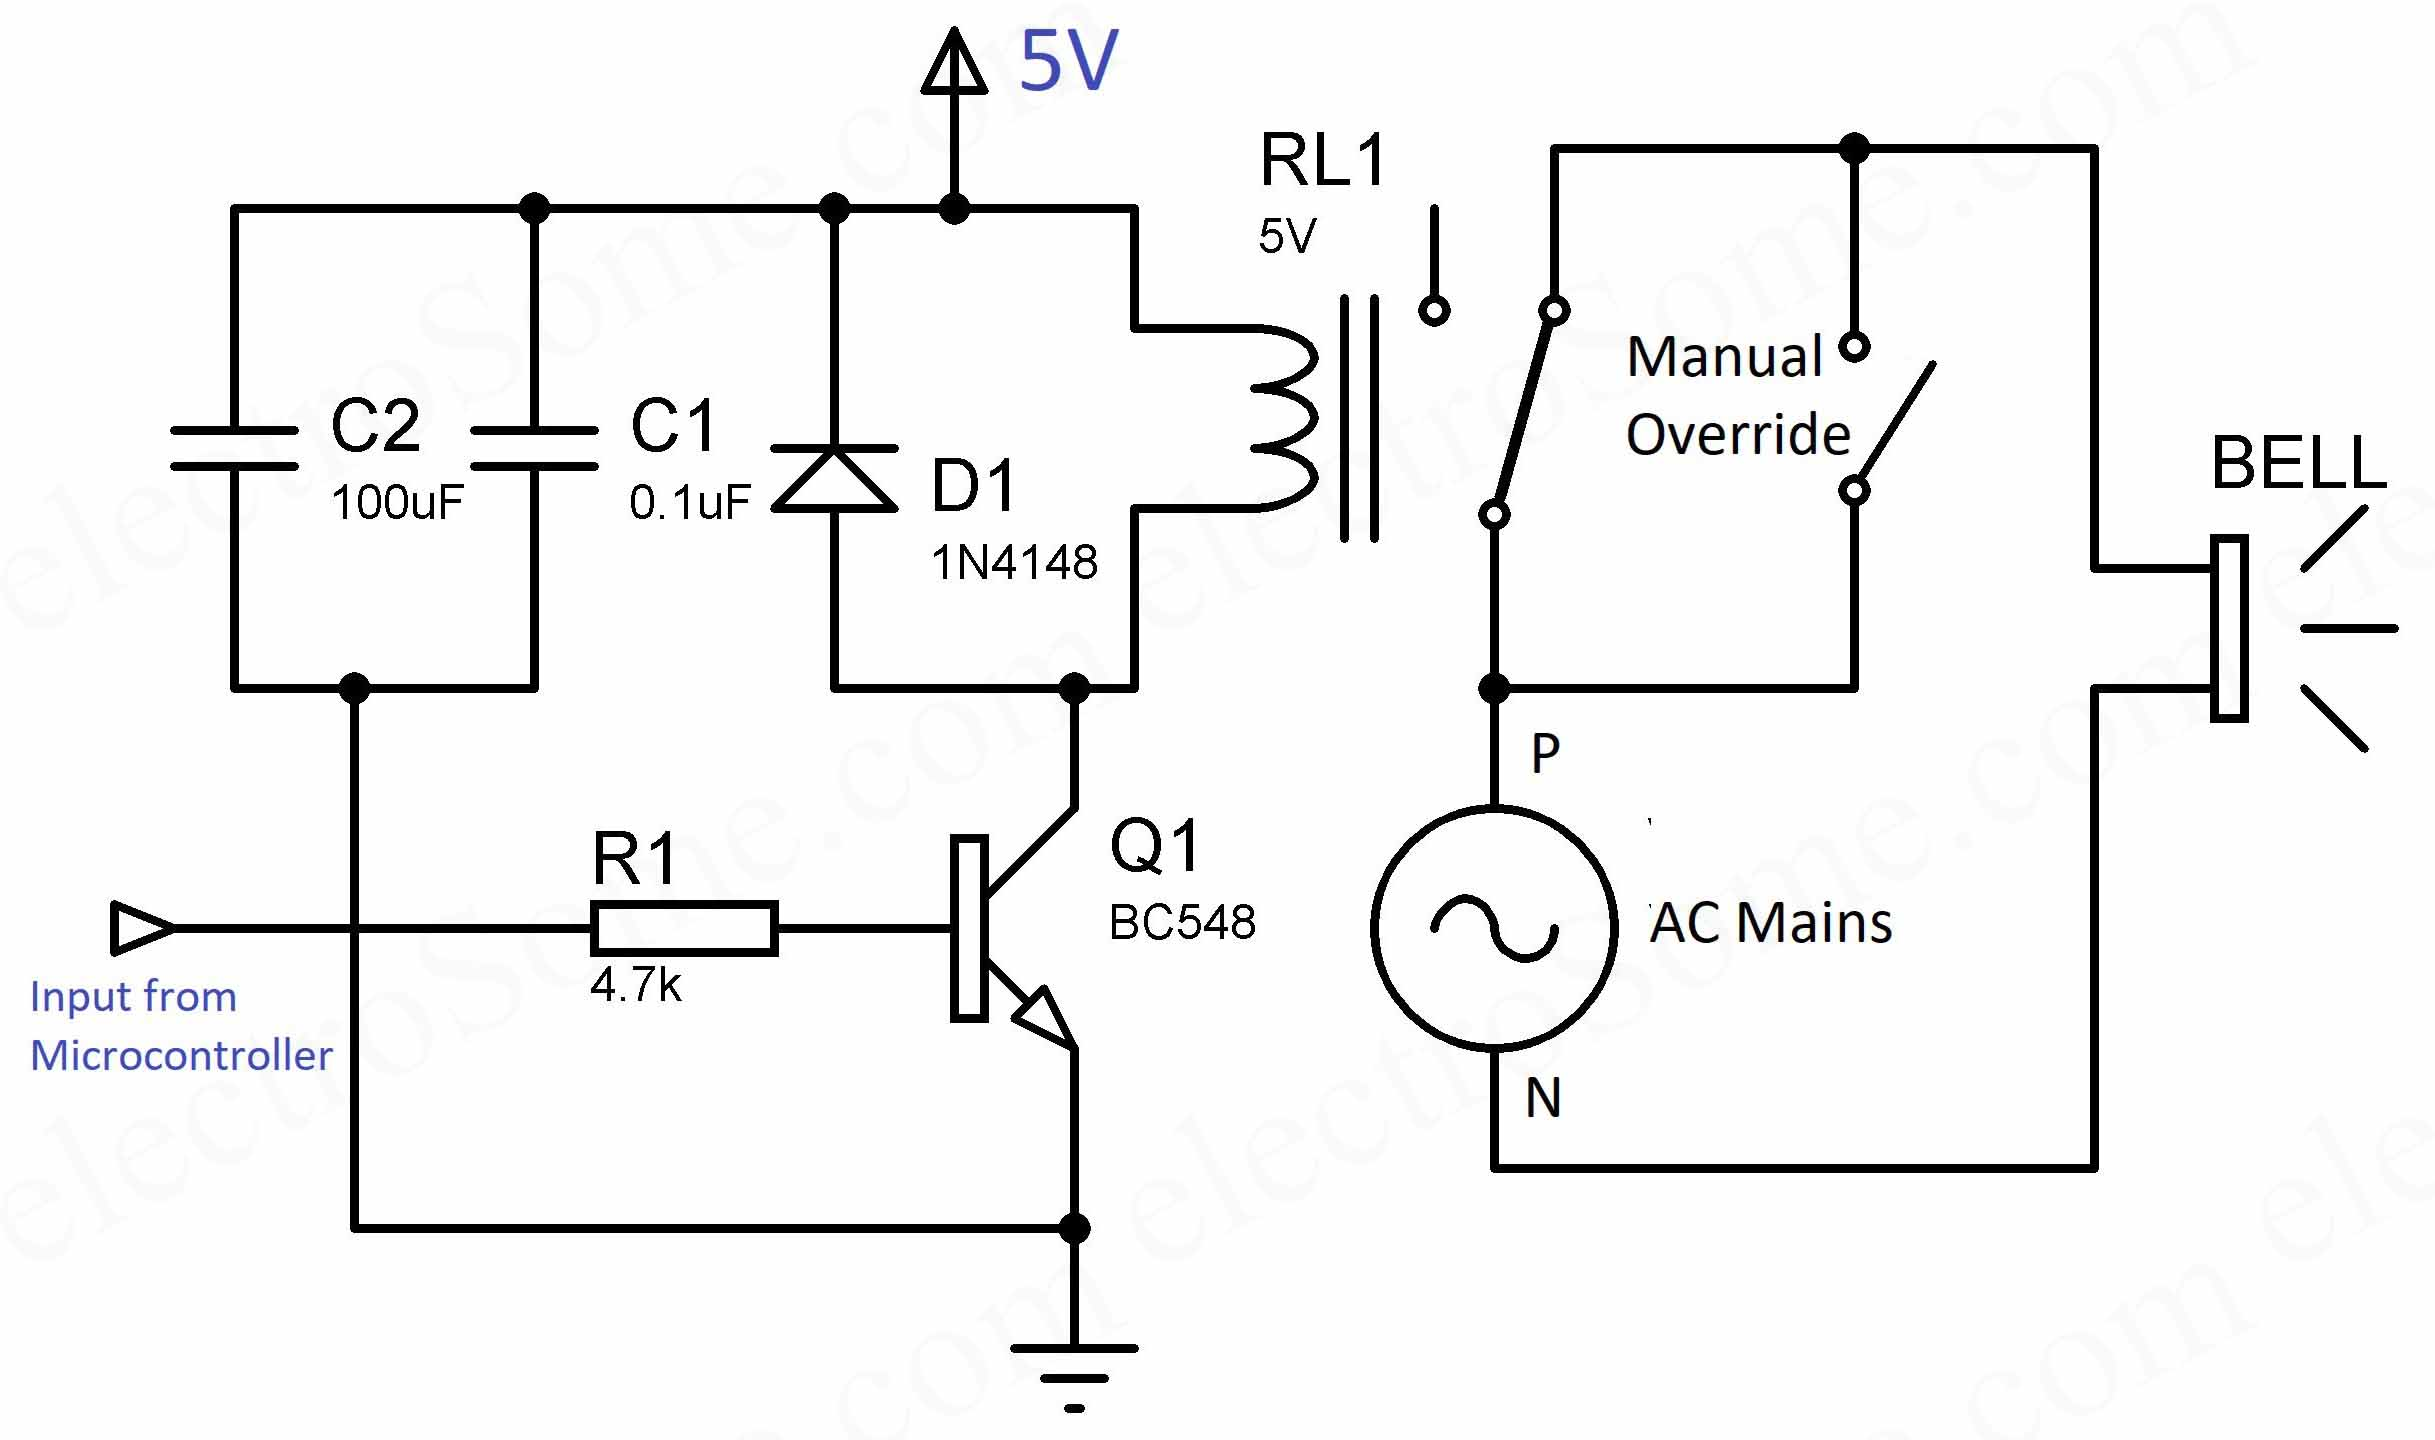 Automatic School College Bell using PIC Microcontroller